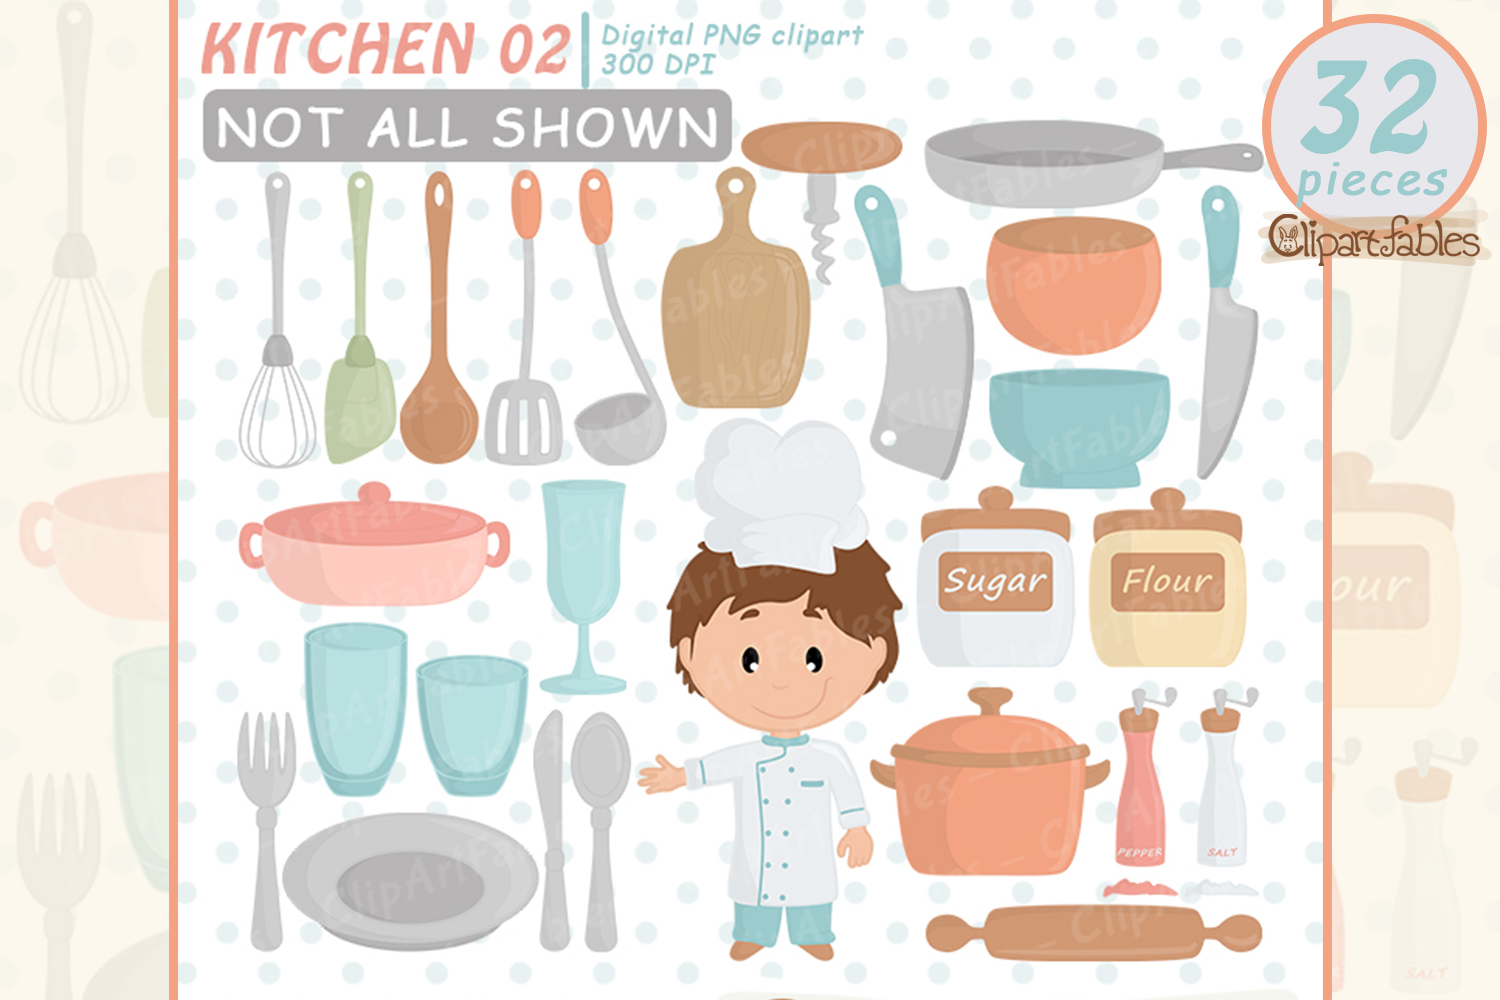 Chef clipart, Kitchen aid, Cute kitchen party, Instant example image 1